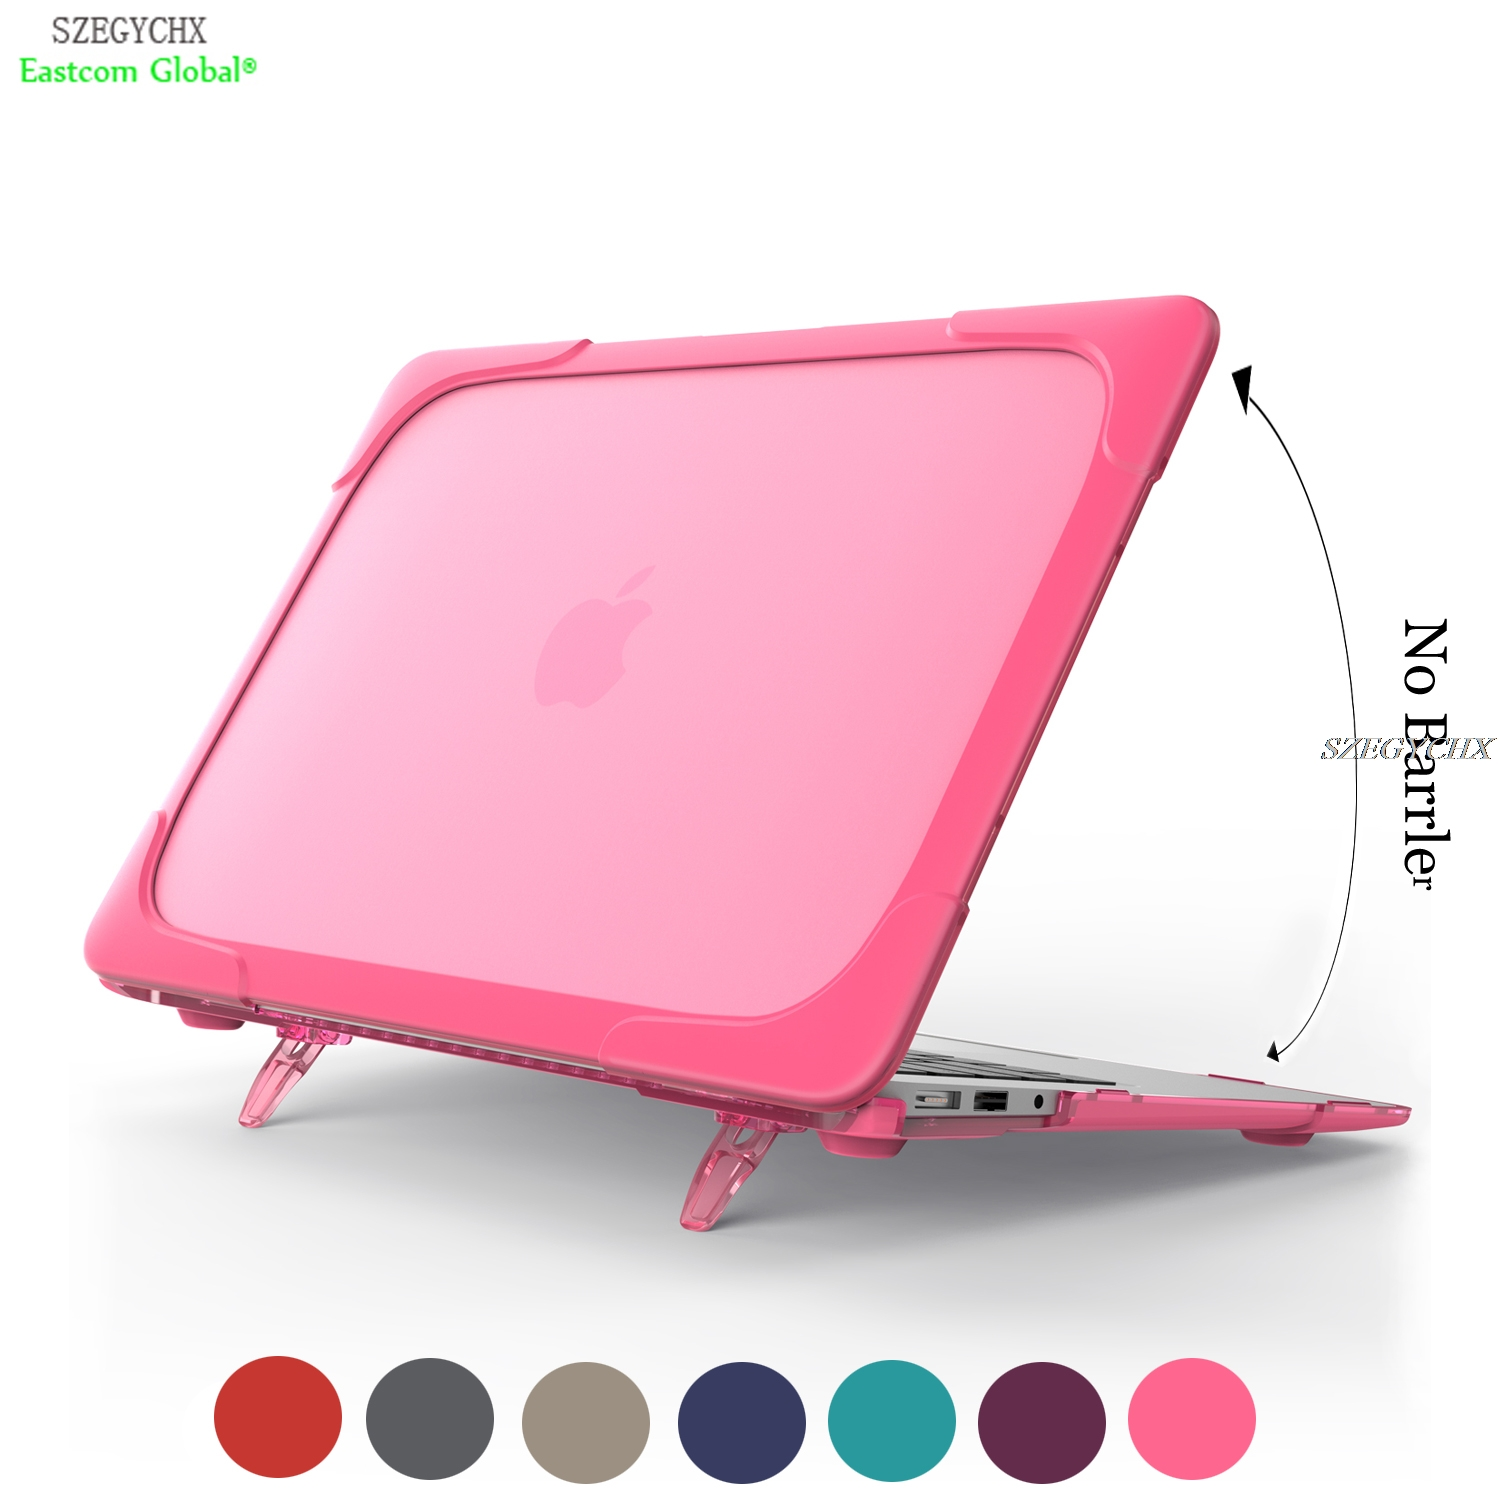 SZEGYCHX Dust Shock Proof Hard Ultra Thin Stand Laptop Cases For Macbook Air 13 Pro 13 15 with Touch bar New Portable Bracket